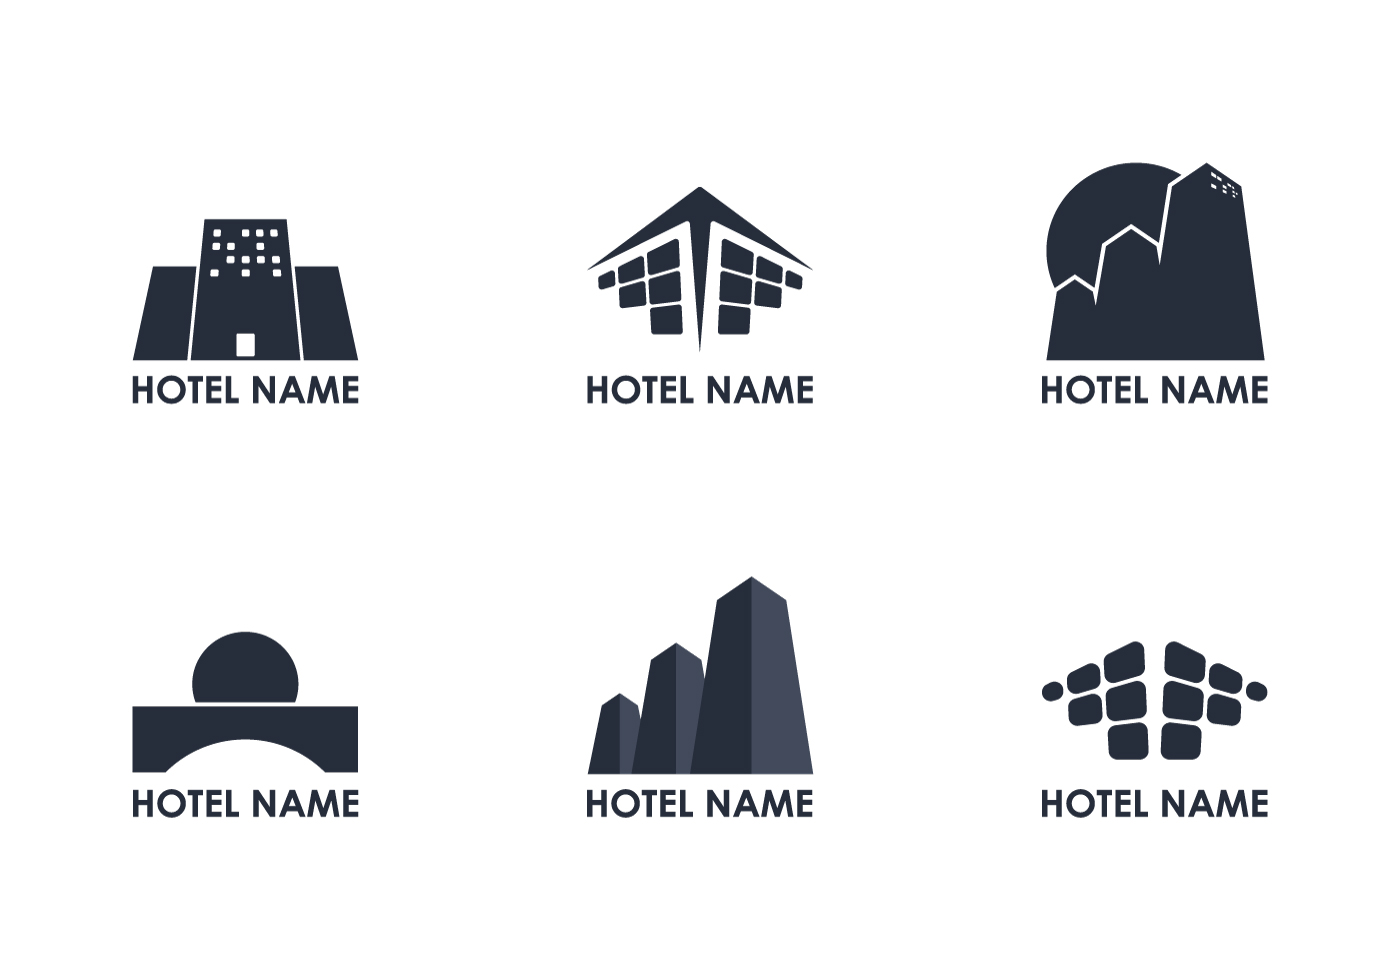 Hotel logo vectors download free vector art stock for Hotel logo design